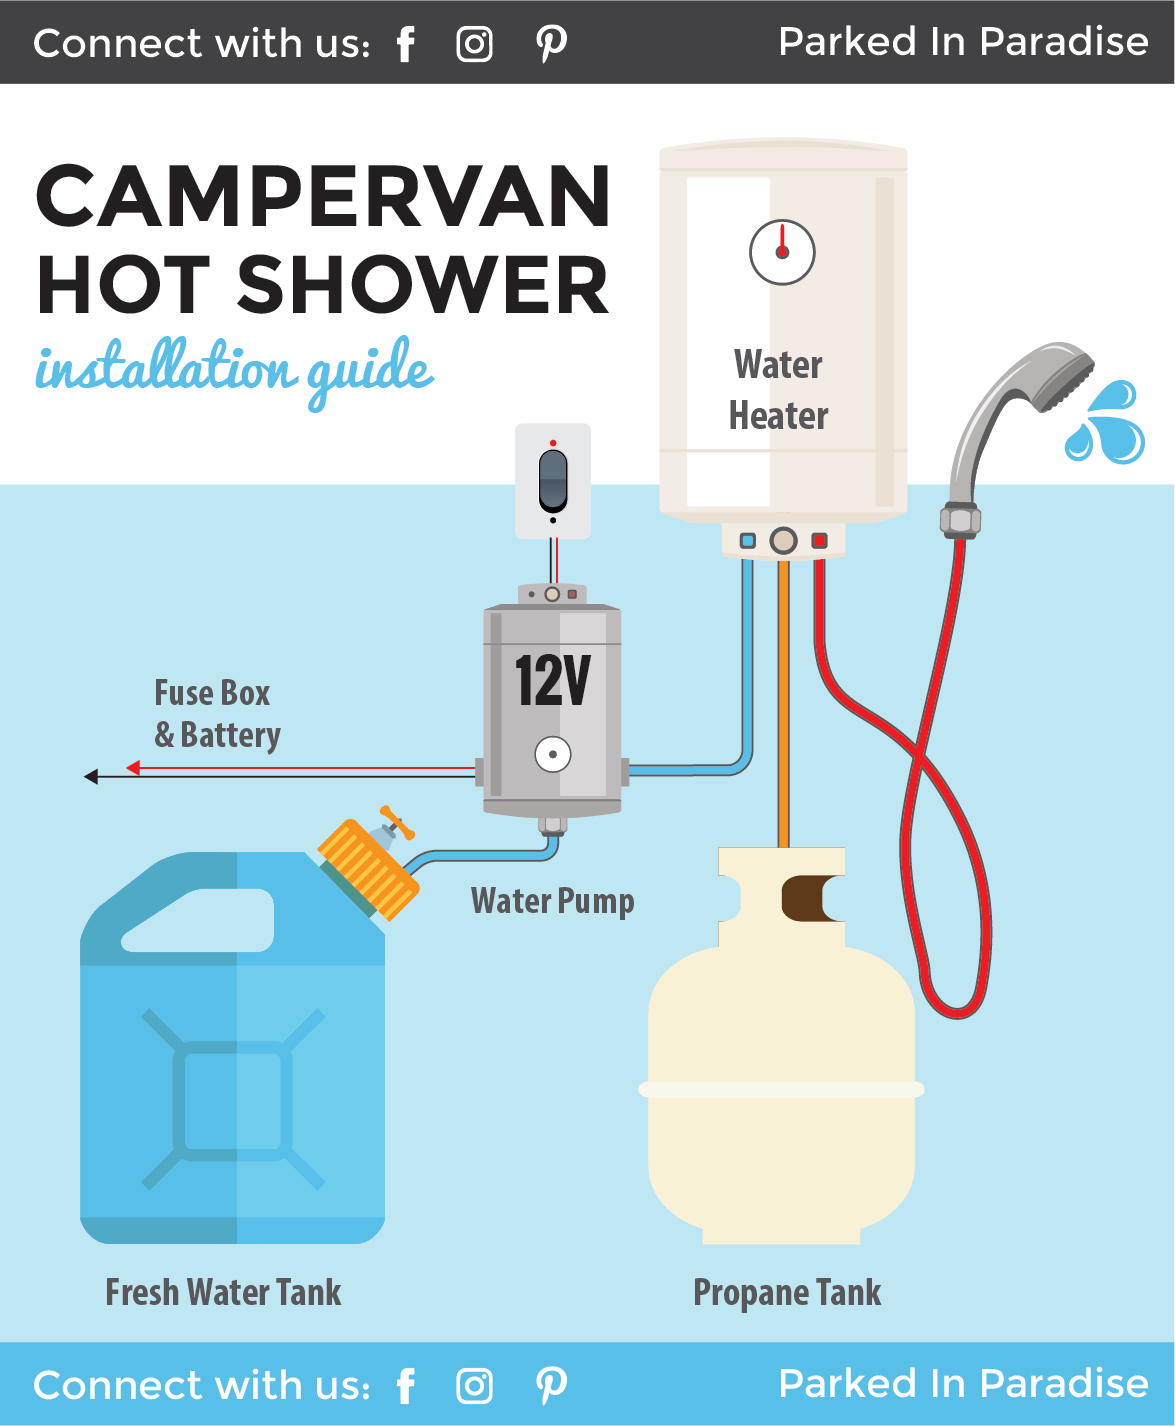 this makes a campervan hot shower install look so easy all you need is a [ 1175 x 1426 Pixel ]